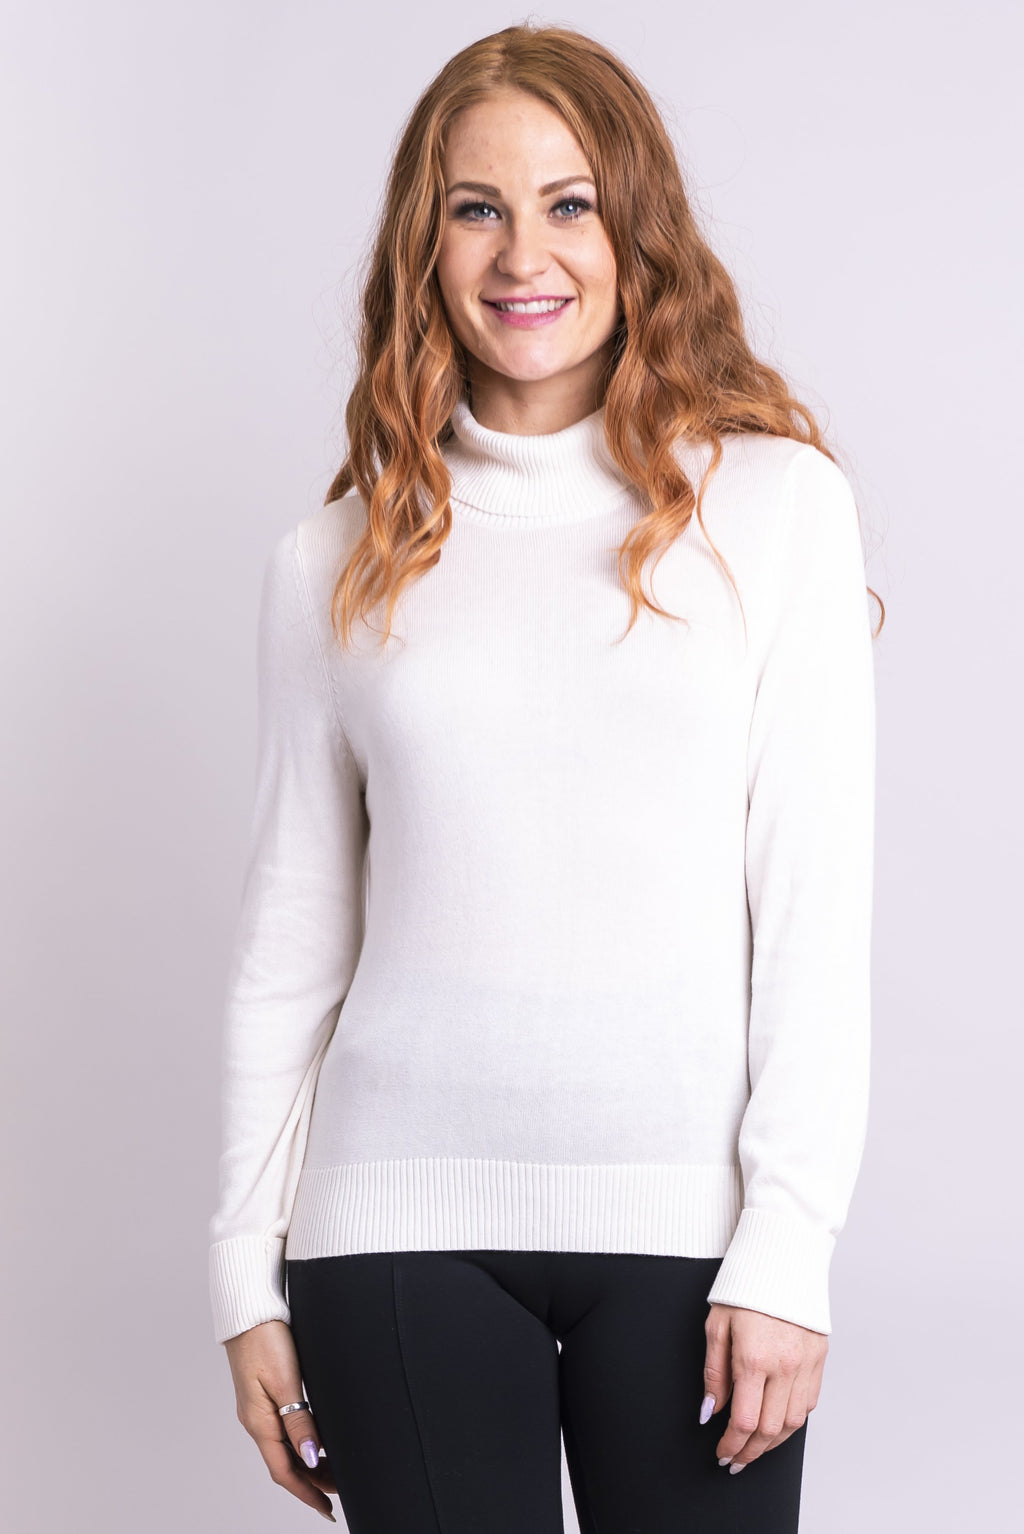 Taylor Sweater, White, Bamboo Cotton - Blue Sky Clothing Co